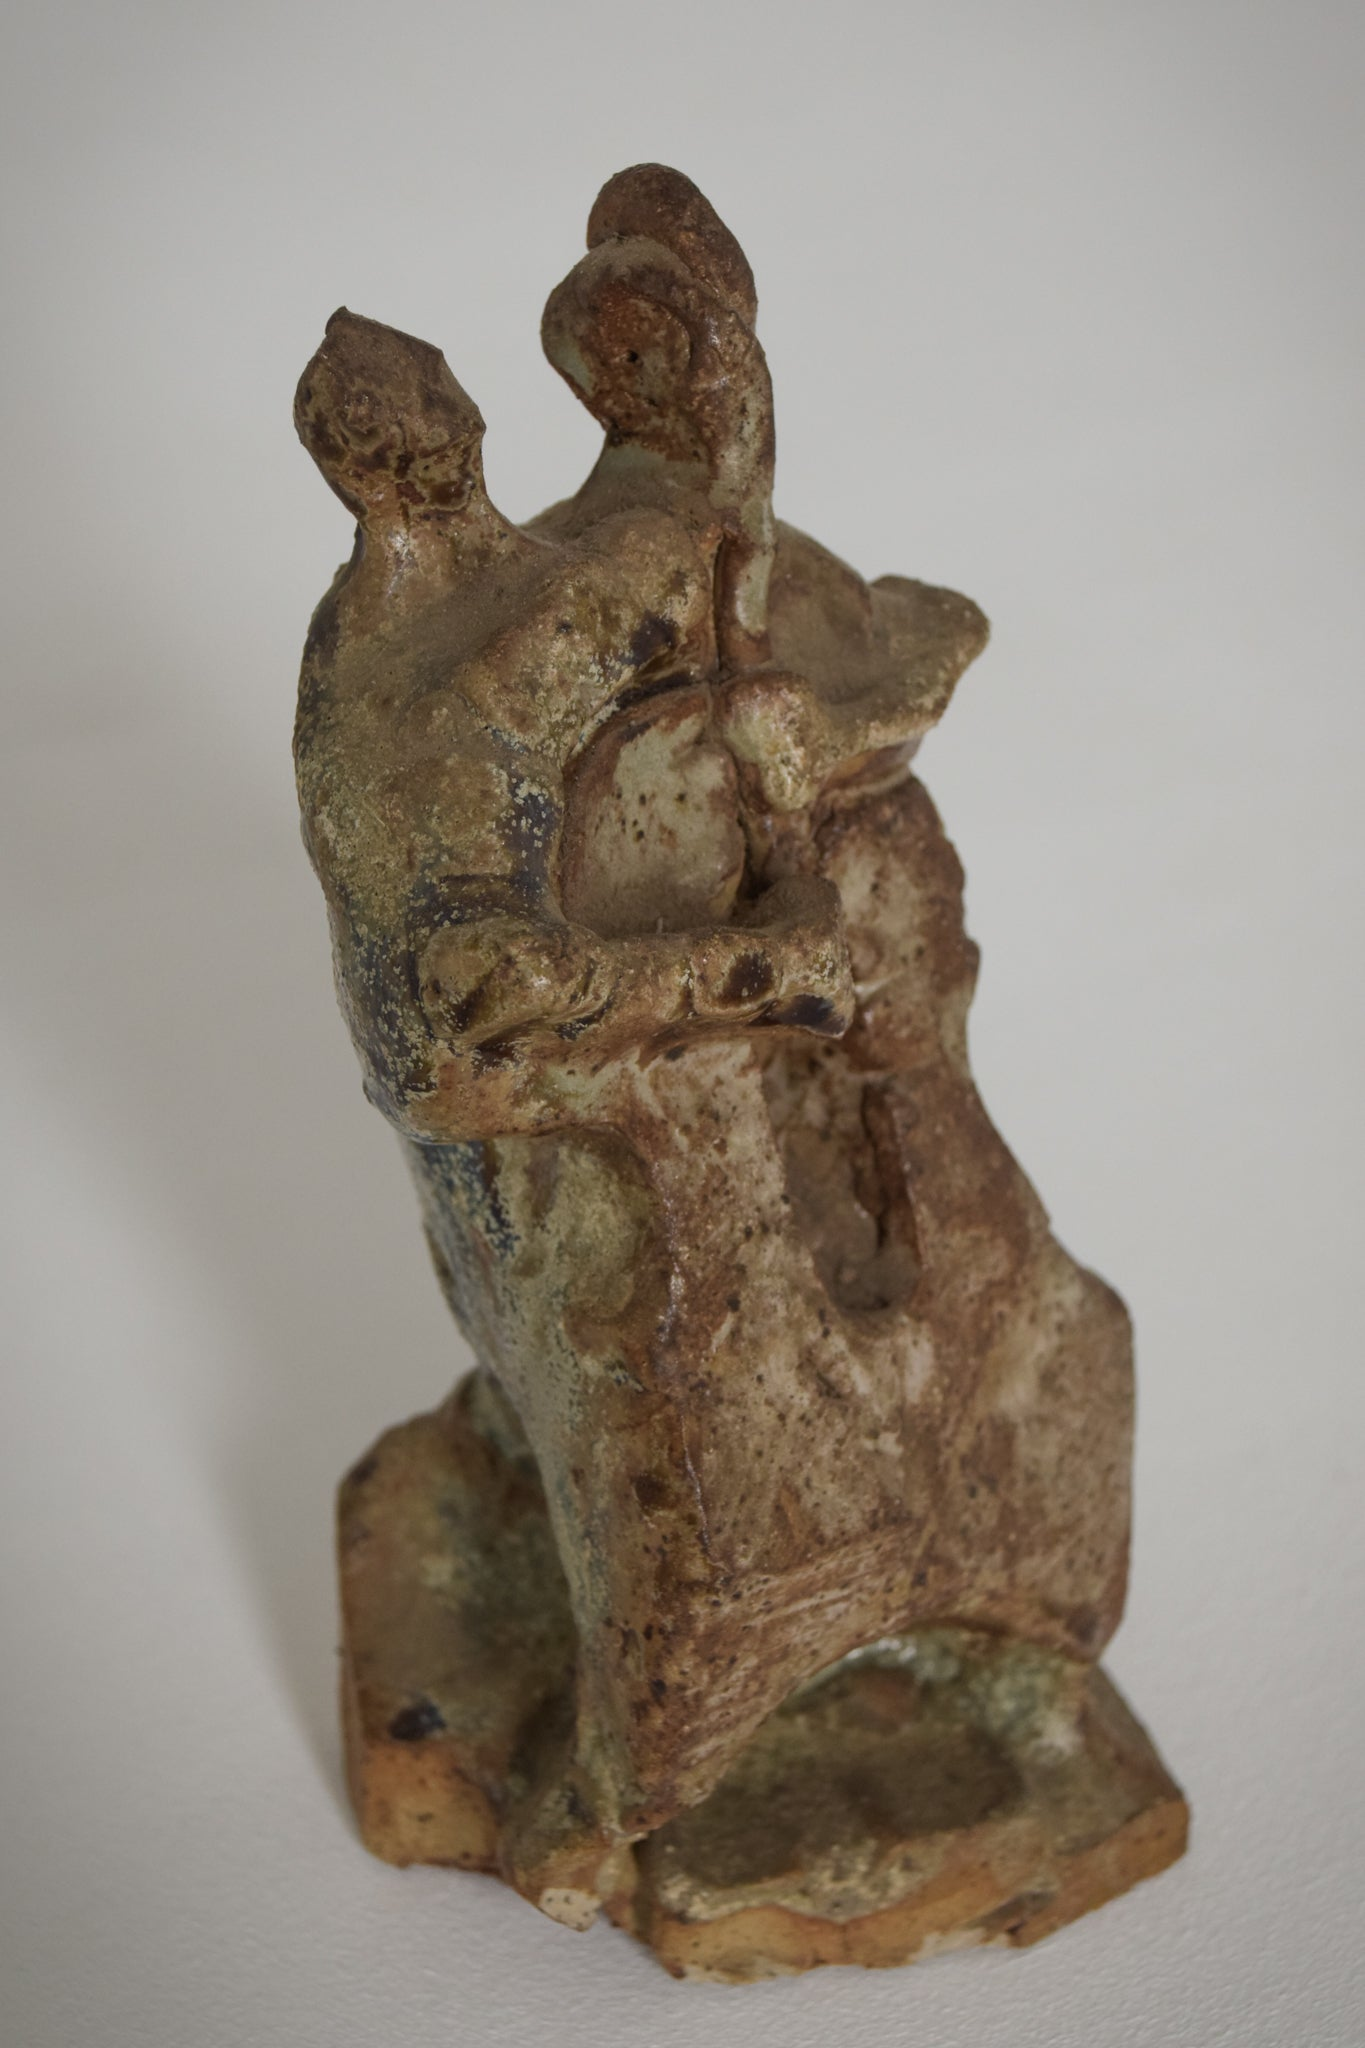 Sculpture of a Figure Playing an Instrument in an Abstract Style_3